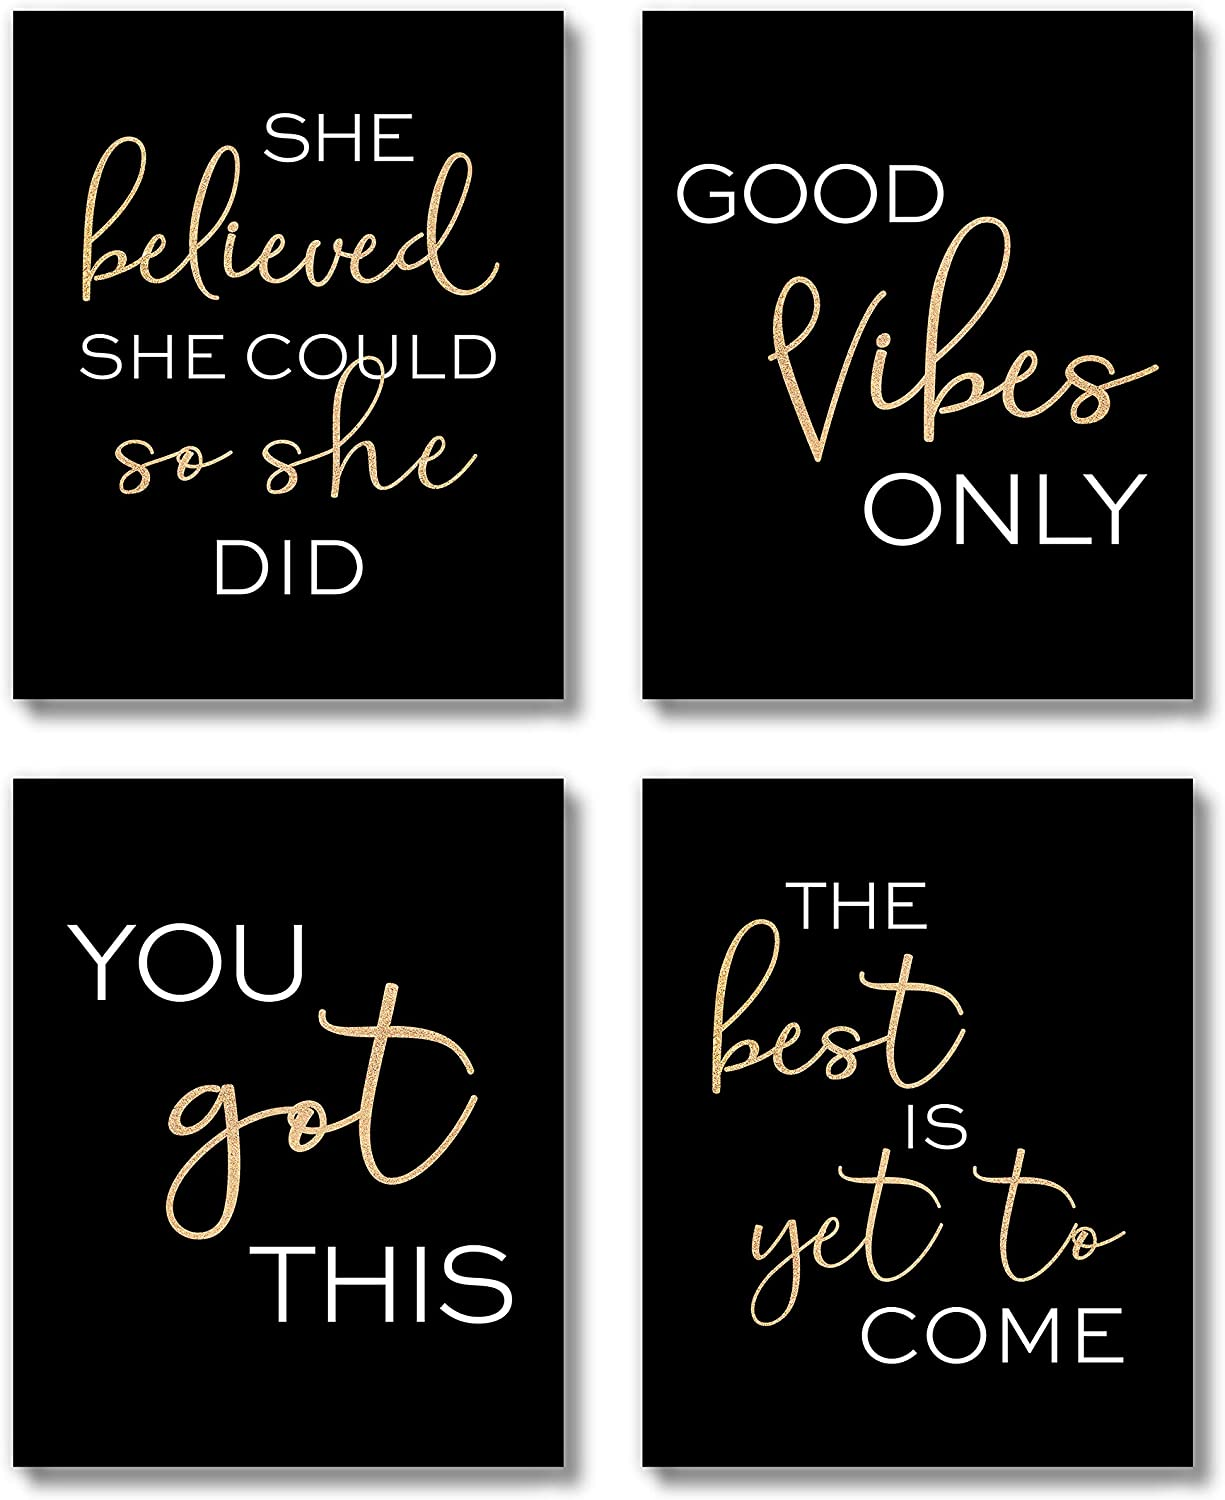 Brooke & Vine Women Office Black and Gold Inspirational Wall Art Prints (UNFRAMED 8 x 10), Motivational Quotes Teen Girl Room Wall Art Posters Bathroom, Bedroom, Dorm or Cubicle (You Got This)